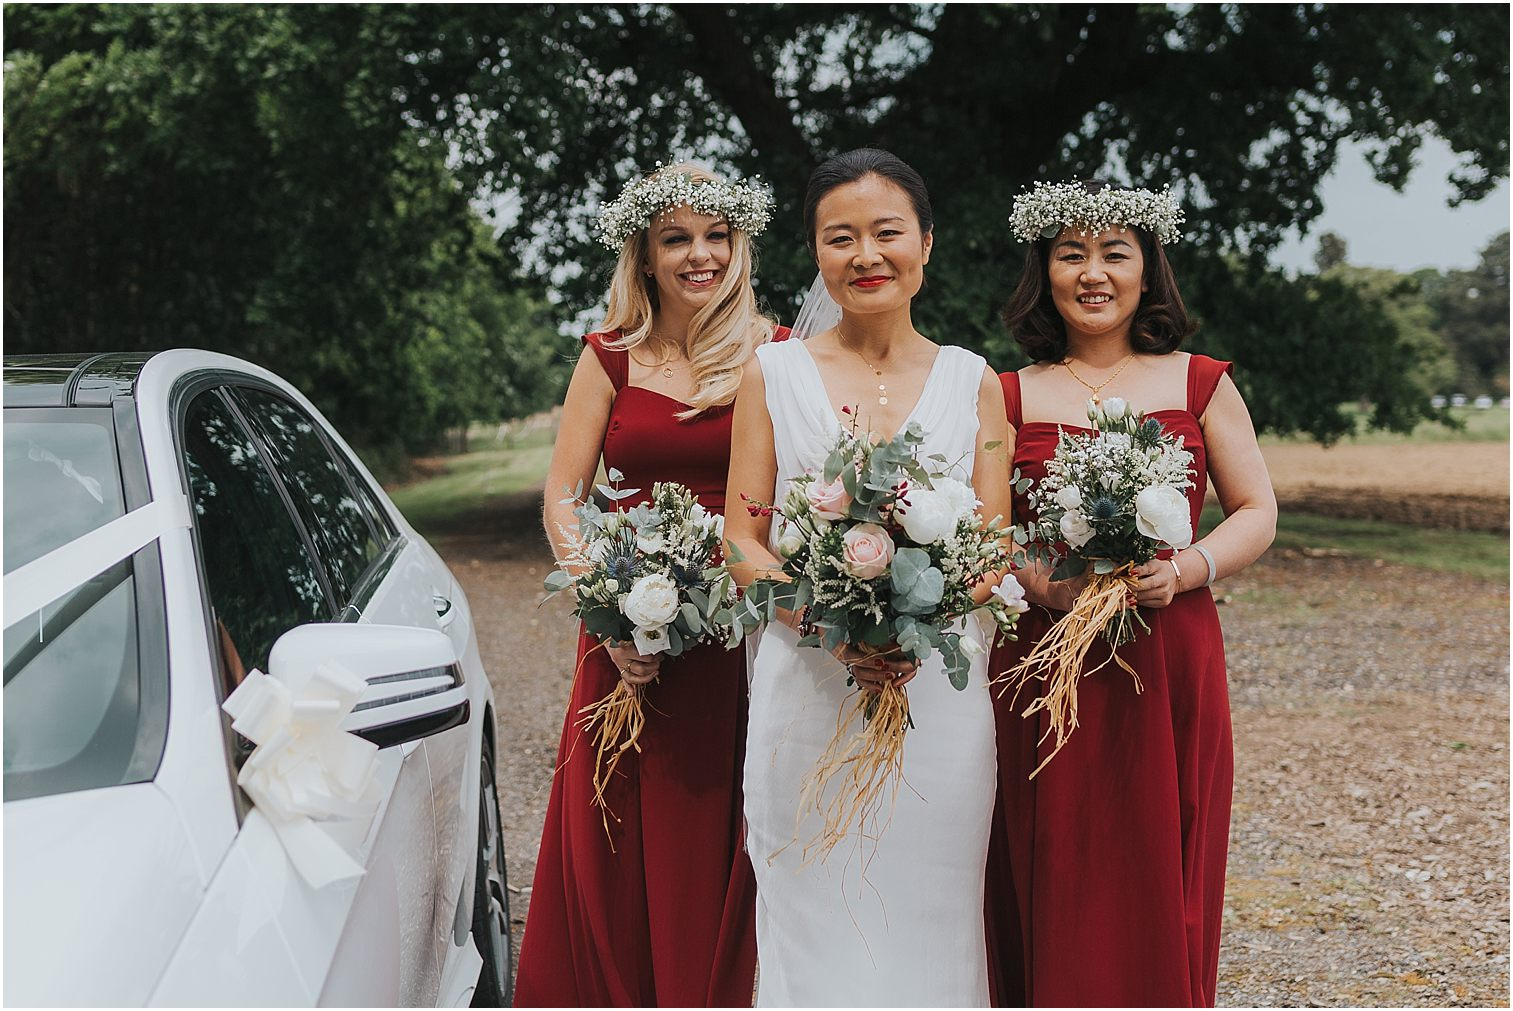 Bride with her bridesmaids standing next to their wedding car before getting married